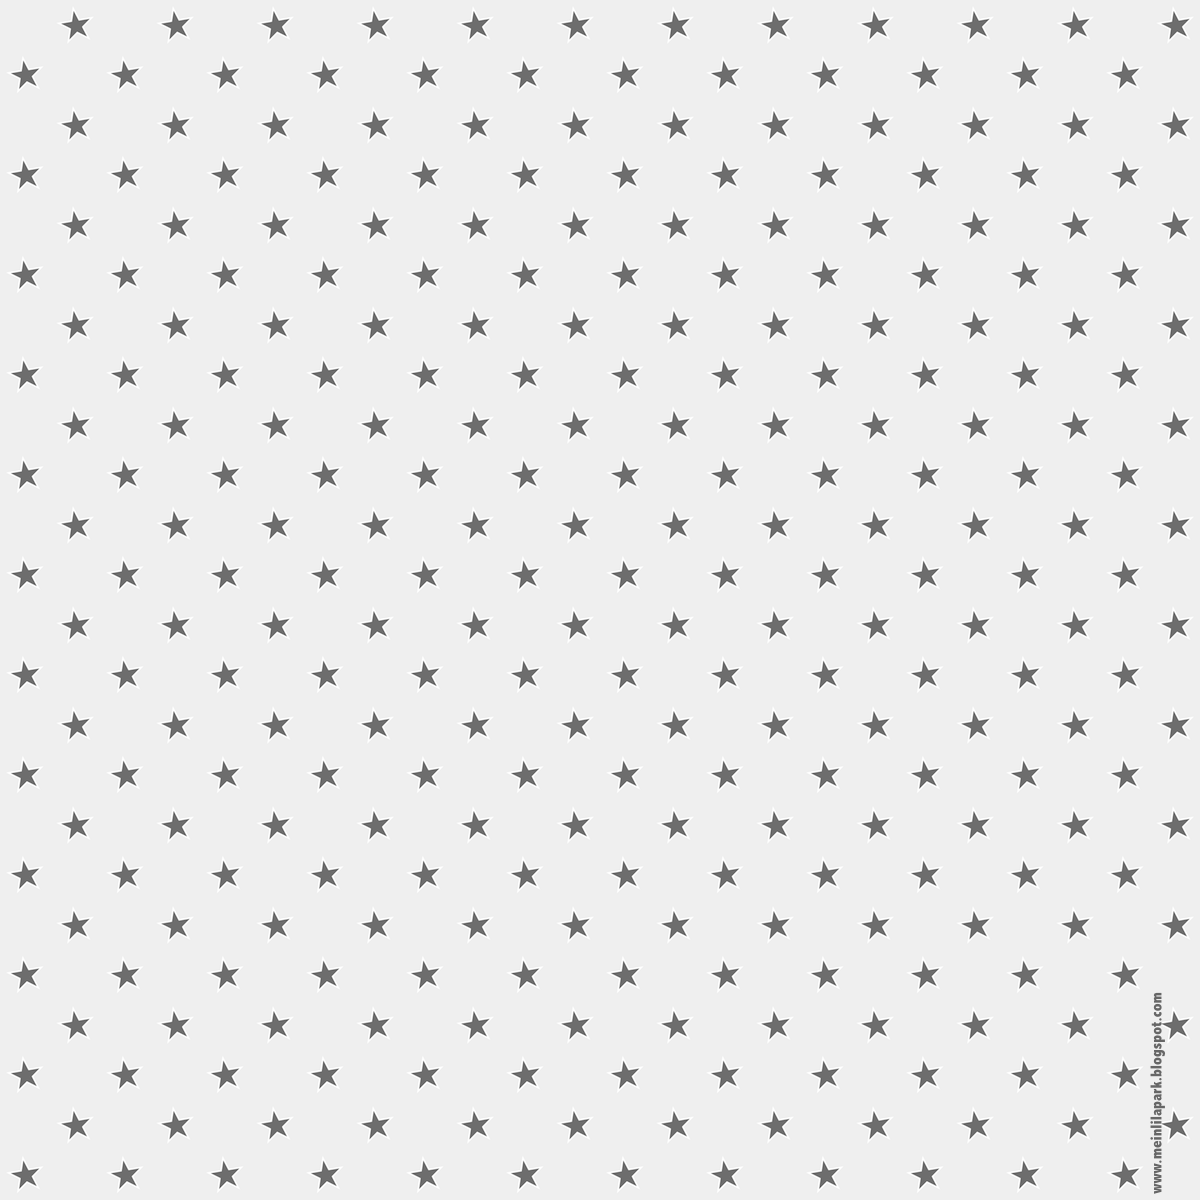 Printable paper backgrounds christmas - Free Printable Gift Wrapping Paper Classy Grey Gift Wrap Paper Ausdruckbares Geschenkpapier Freebie